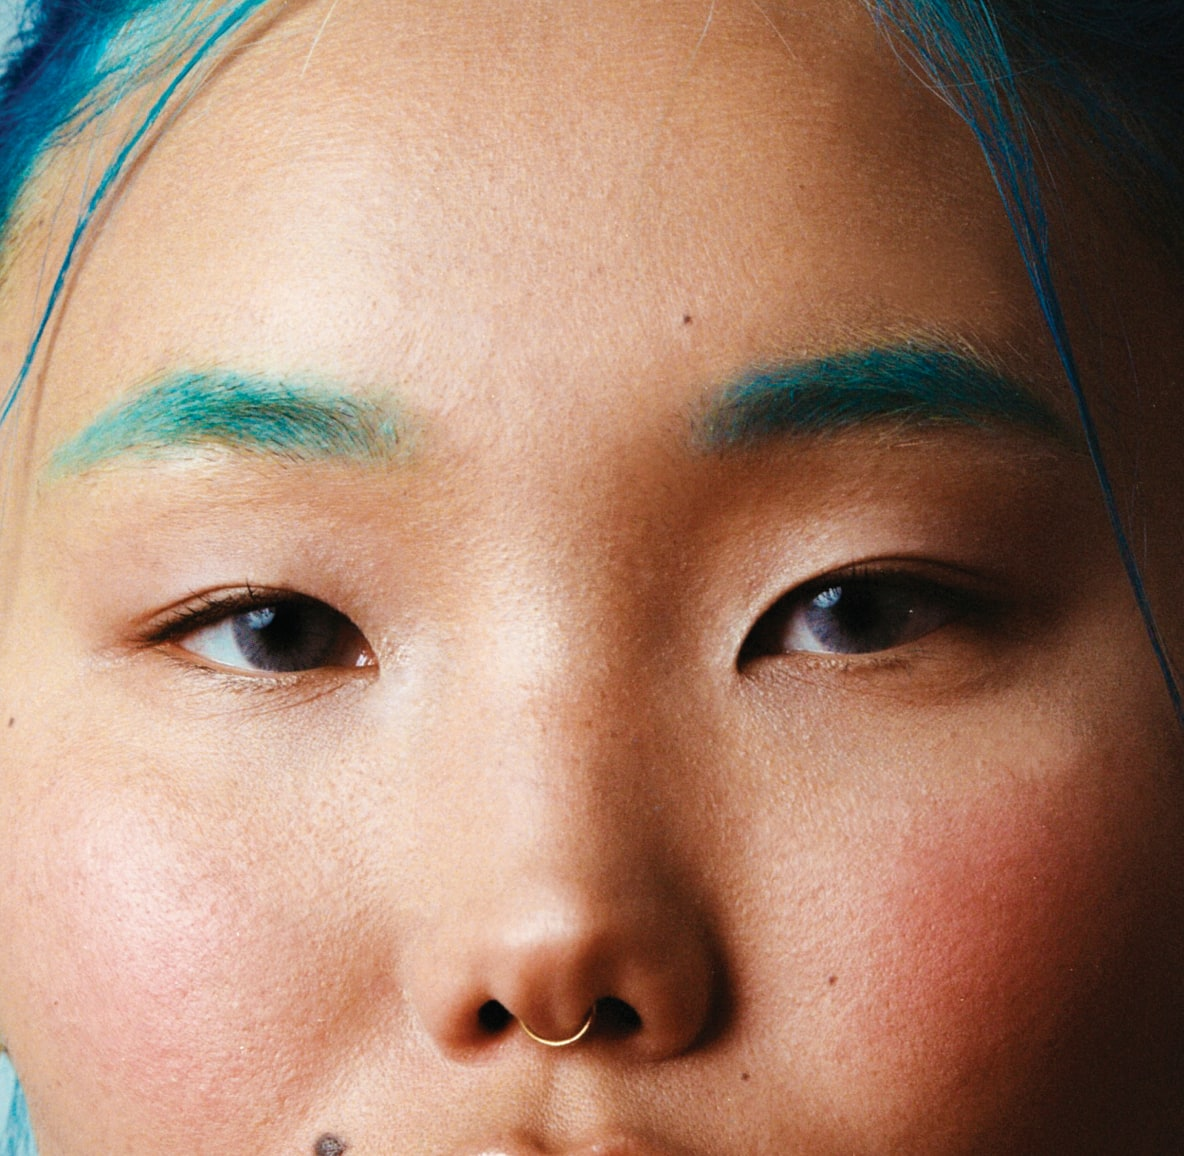 Close-up of a woman with blue hair wearing bright blue eyeshadow on her eyebrows